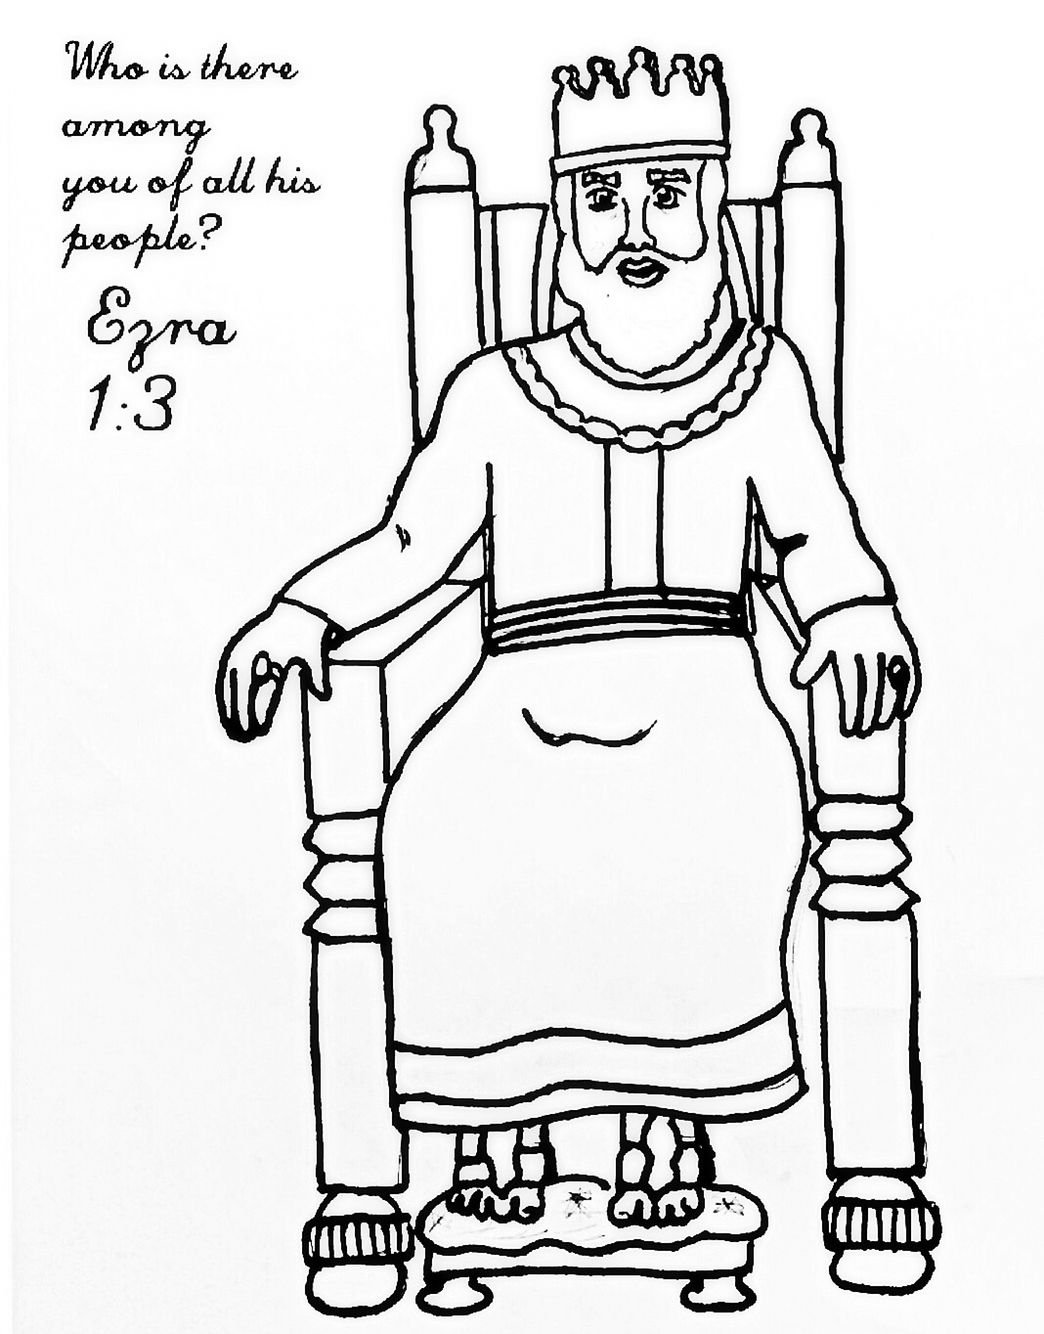 Ezra Chapter 17 Coloring Page  Coloring pages, Chapter, Color